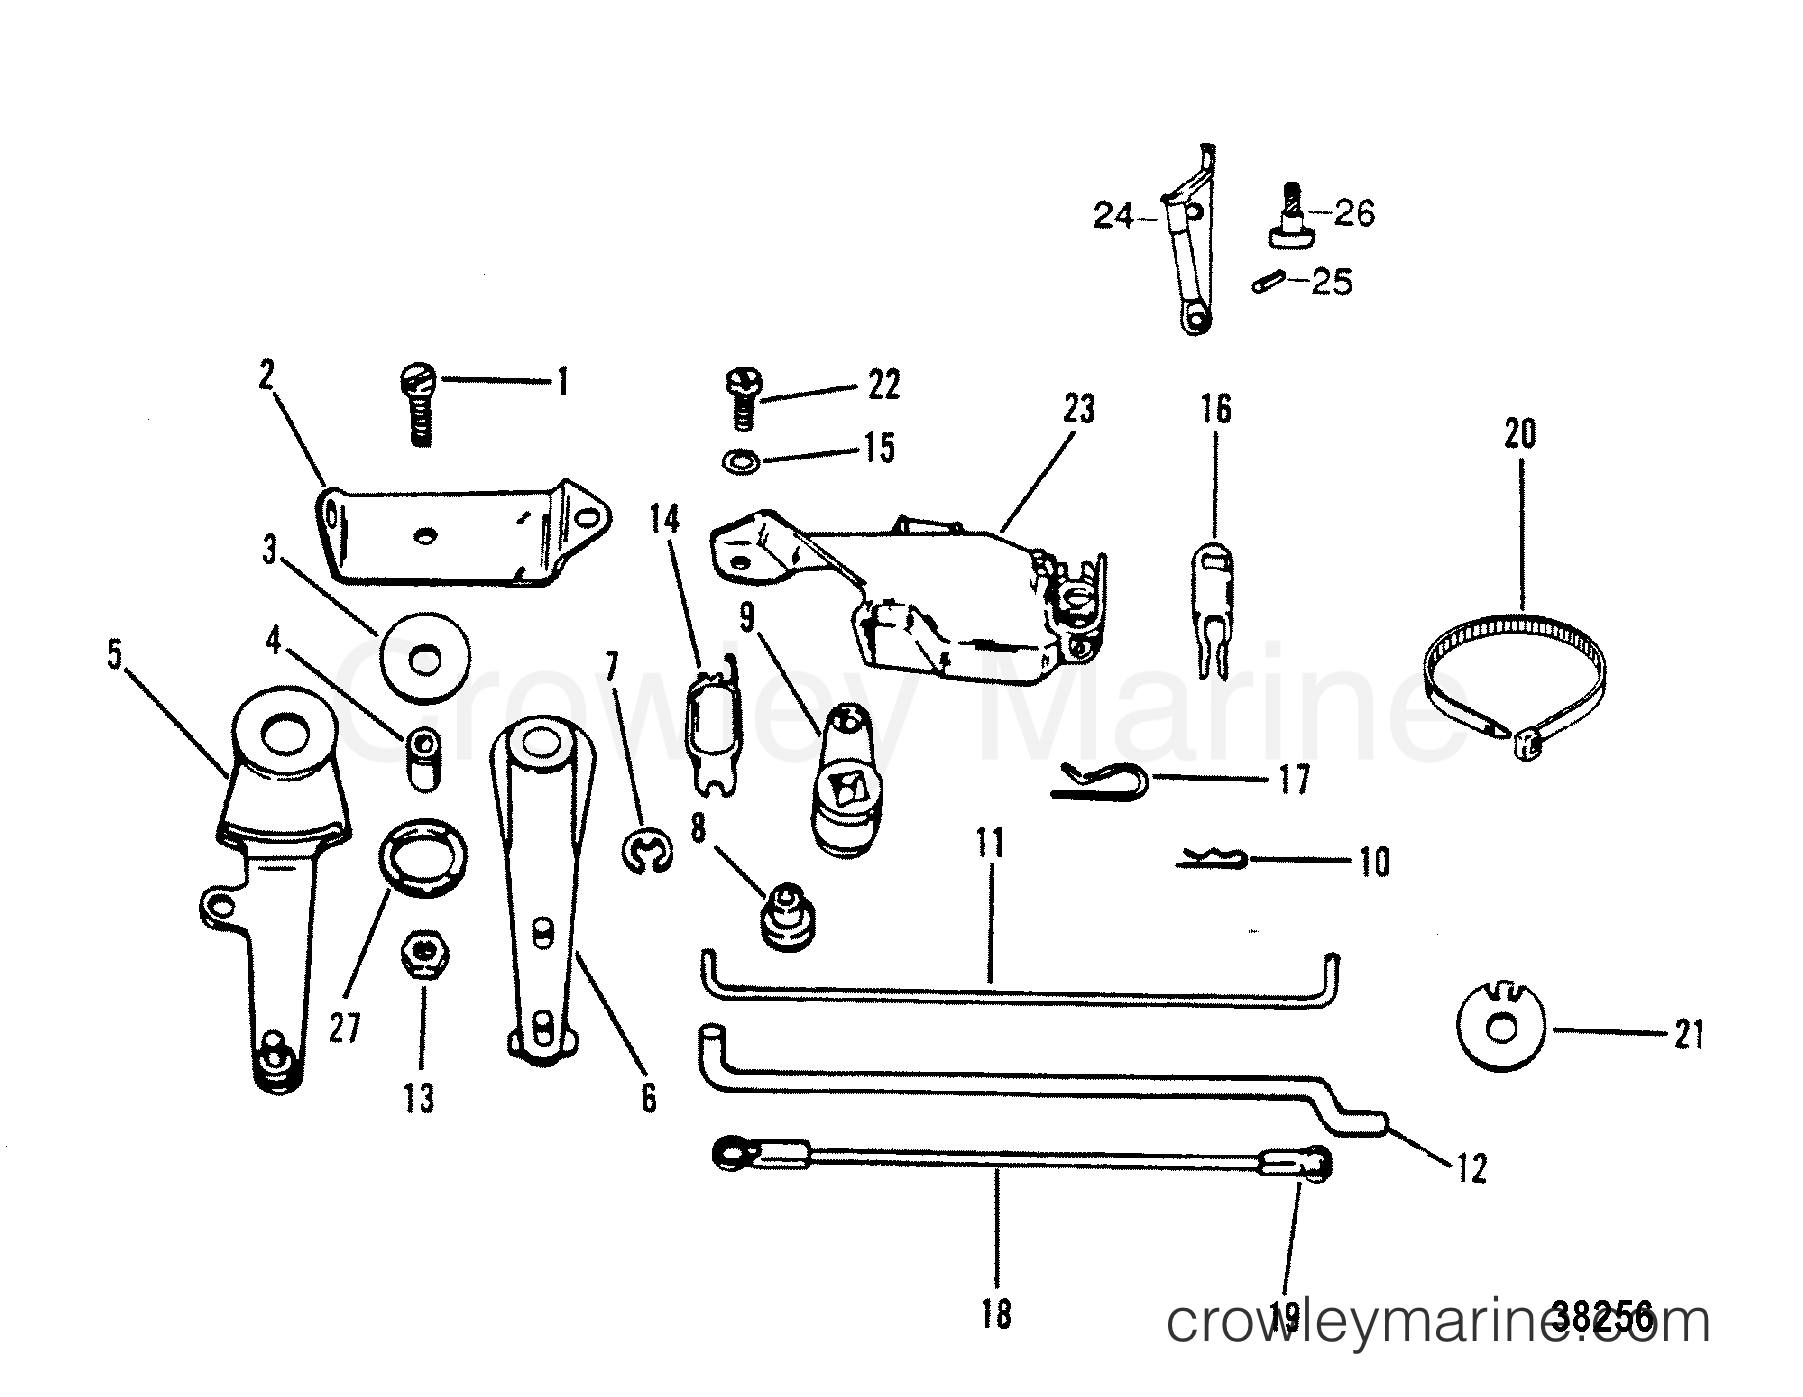 Remote Control Attaching Components